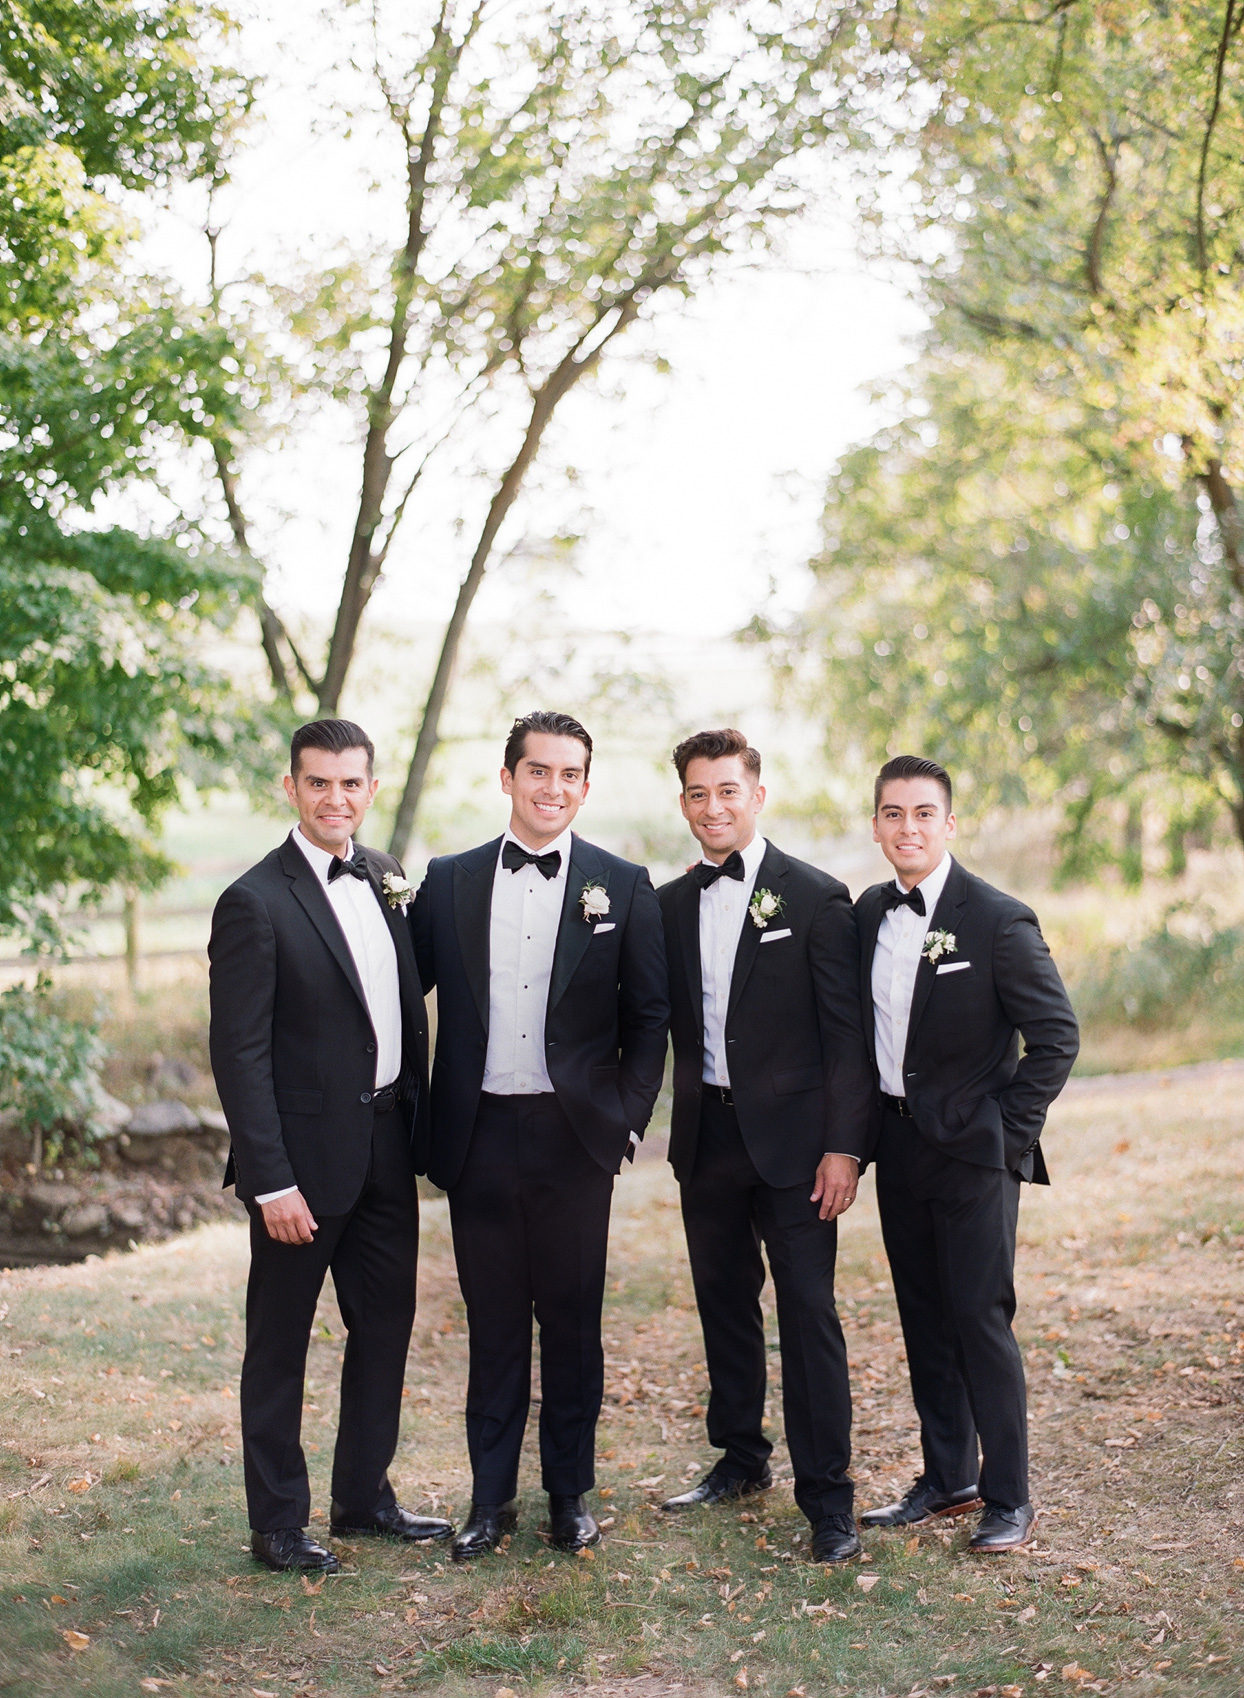 groom with three groomsmen in classic black suits